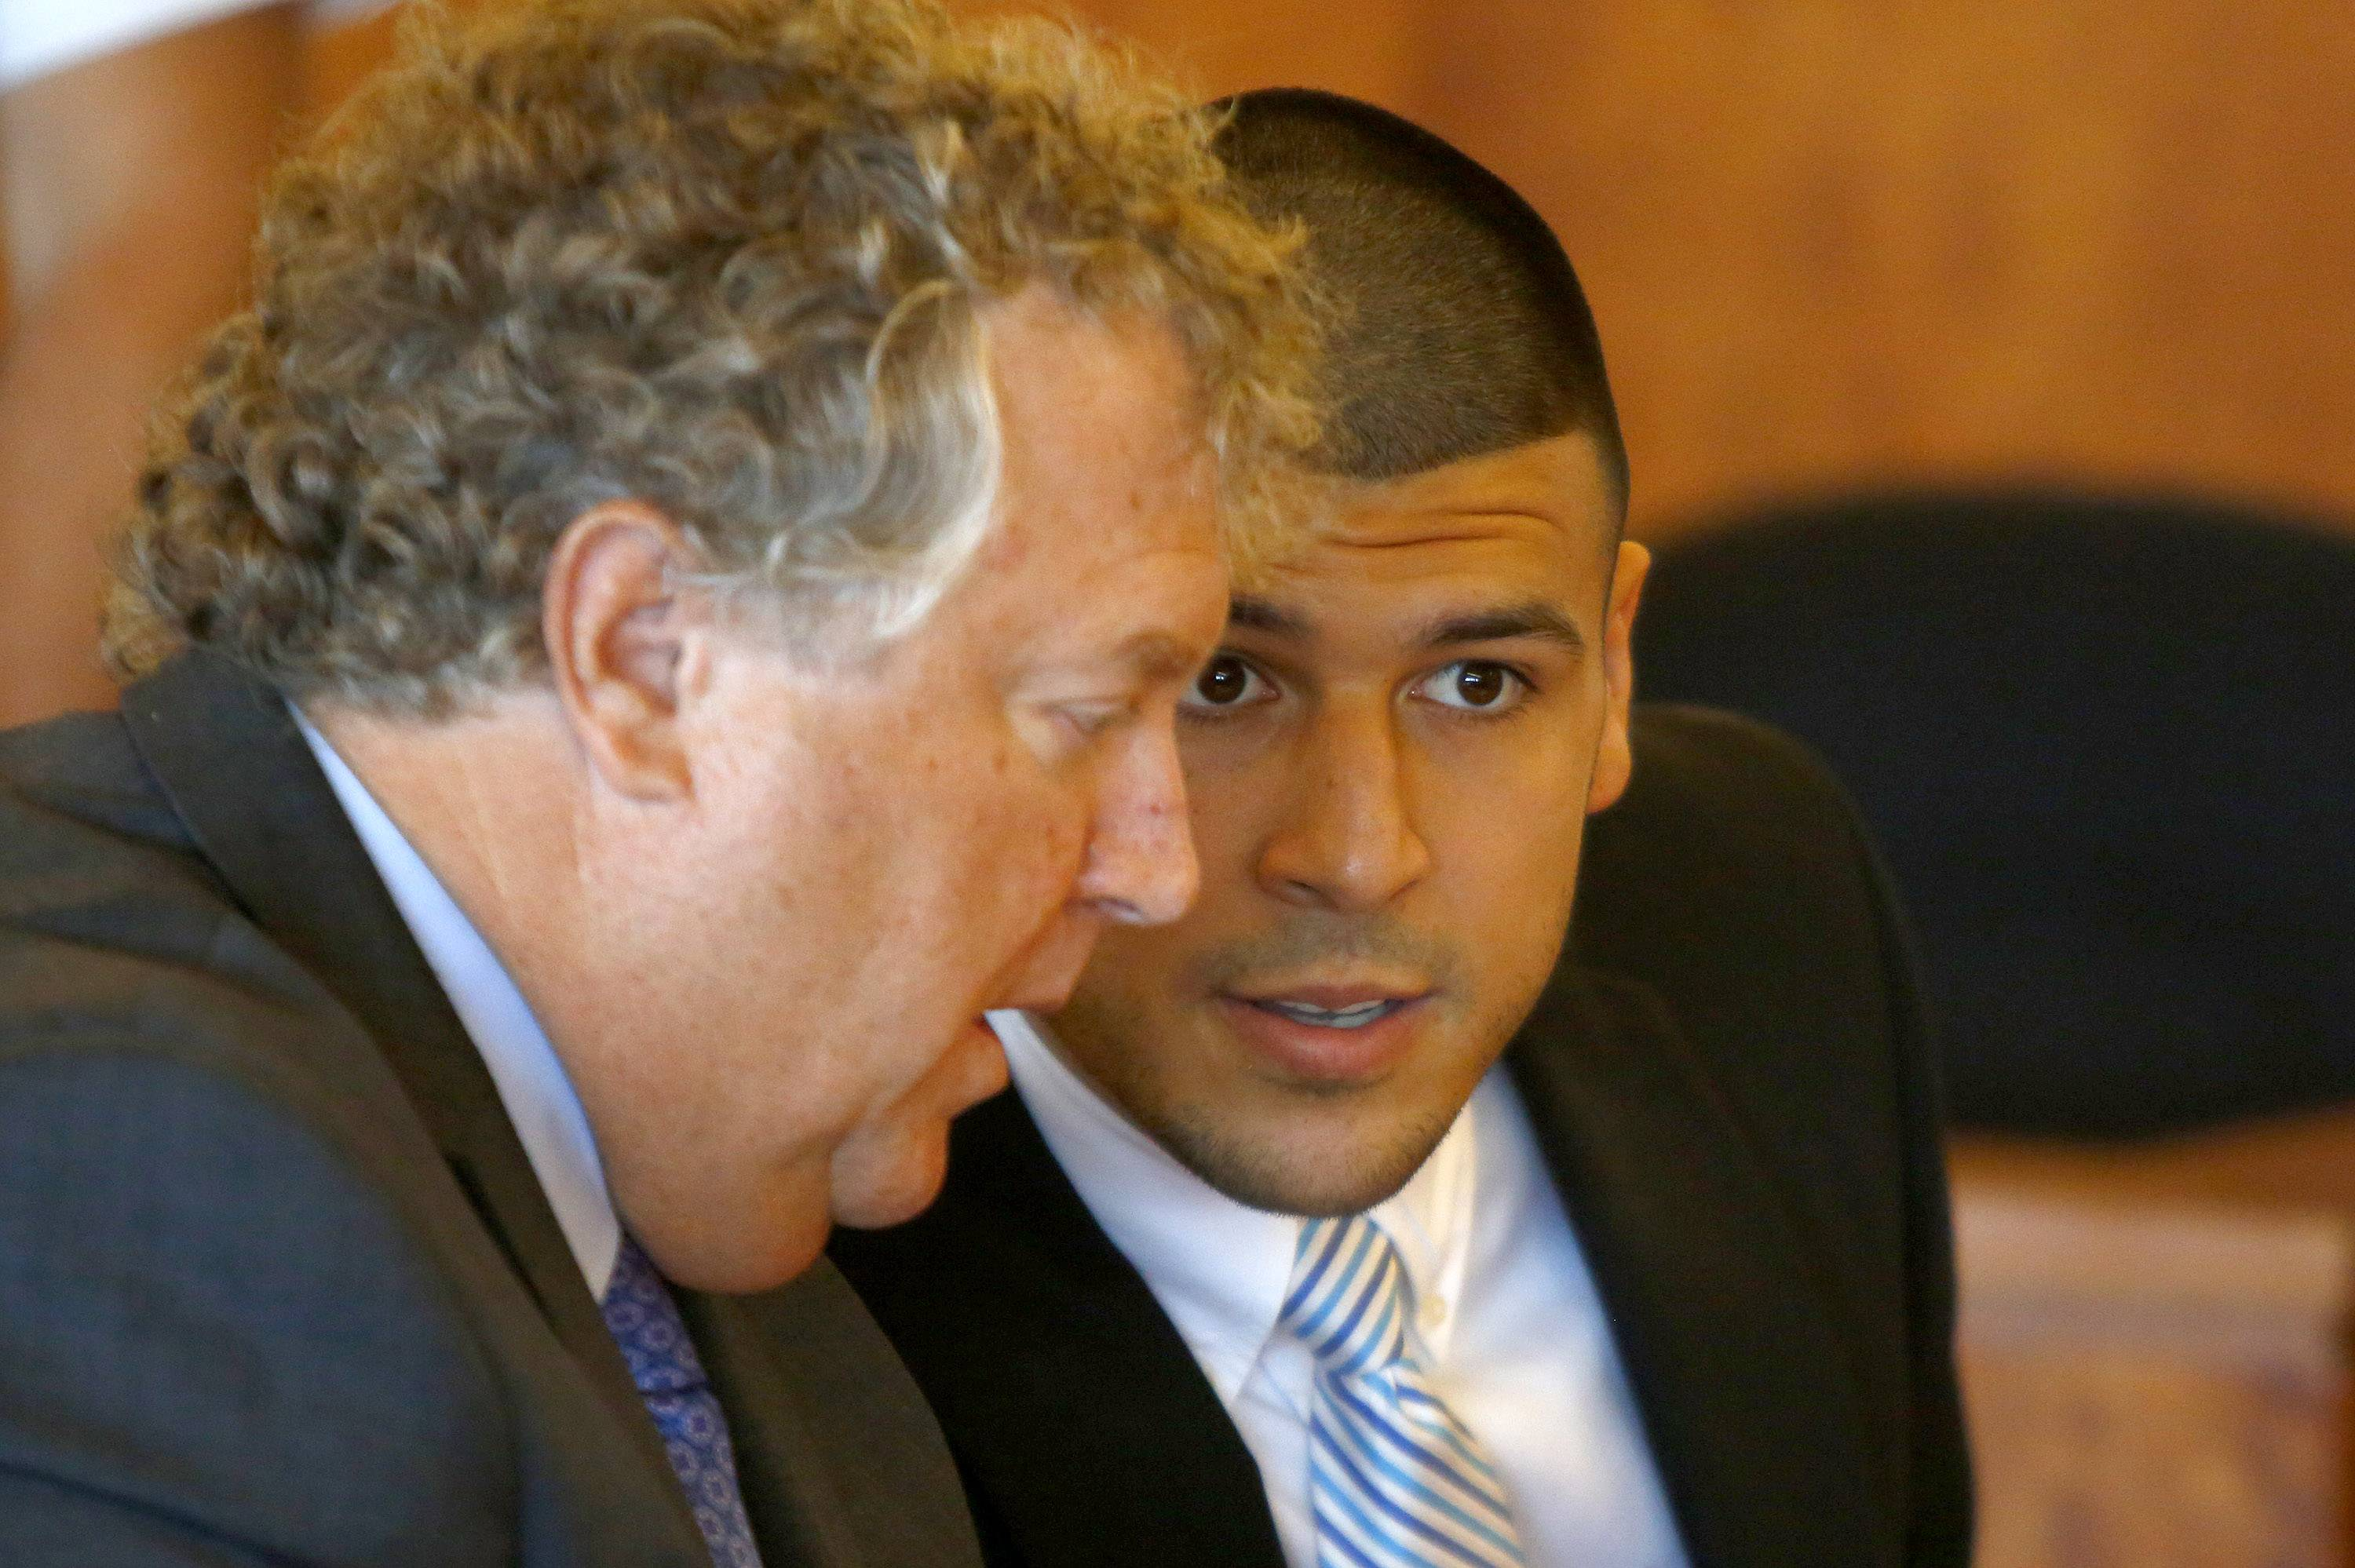 Former New England Patriots football player Aaron Hernandez, right, speaks with his lawyer Michael Fee during a hearing in Bristol County Superior Court in Fall River, Mass., Wednesday. The New England Patriots will turn over hundreds of pages of personnel records to lawyers for Hernandez but object to producing scouting reports and a psychological assessment, a team lawyer said Wednesday.